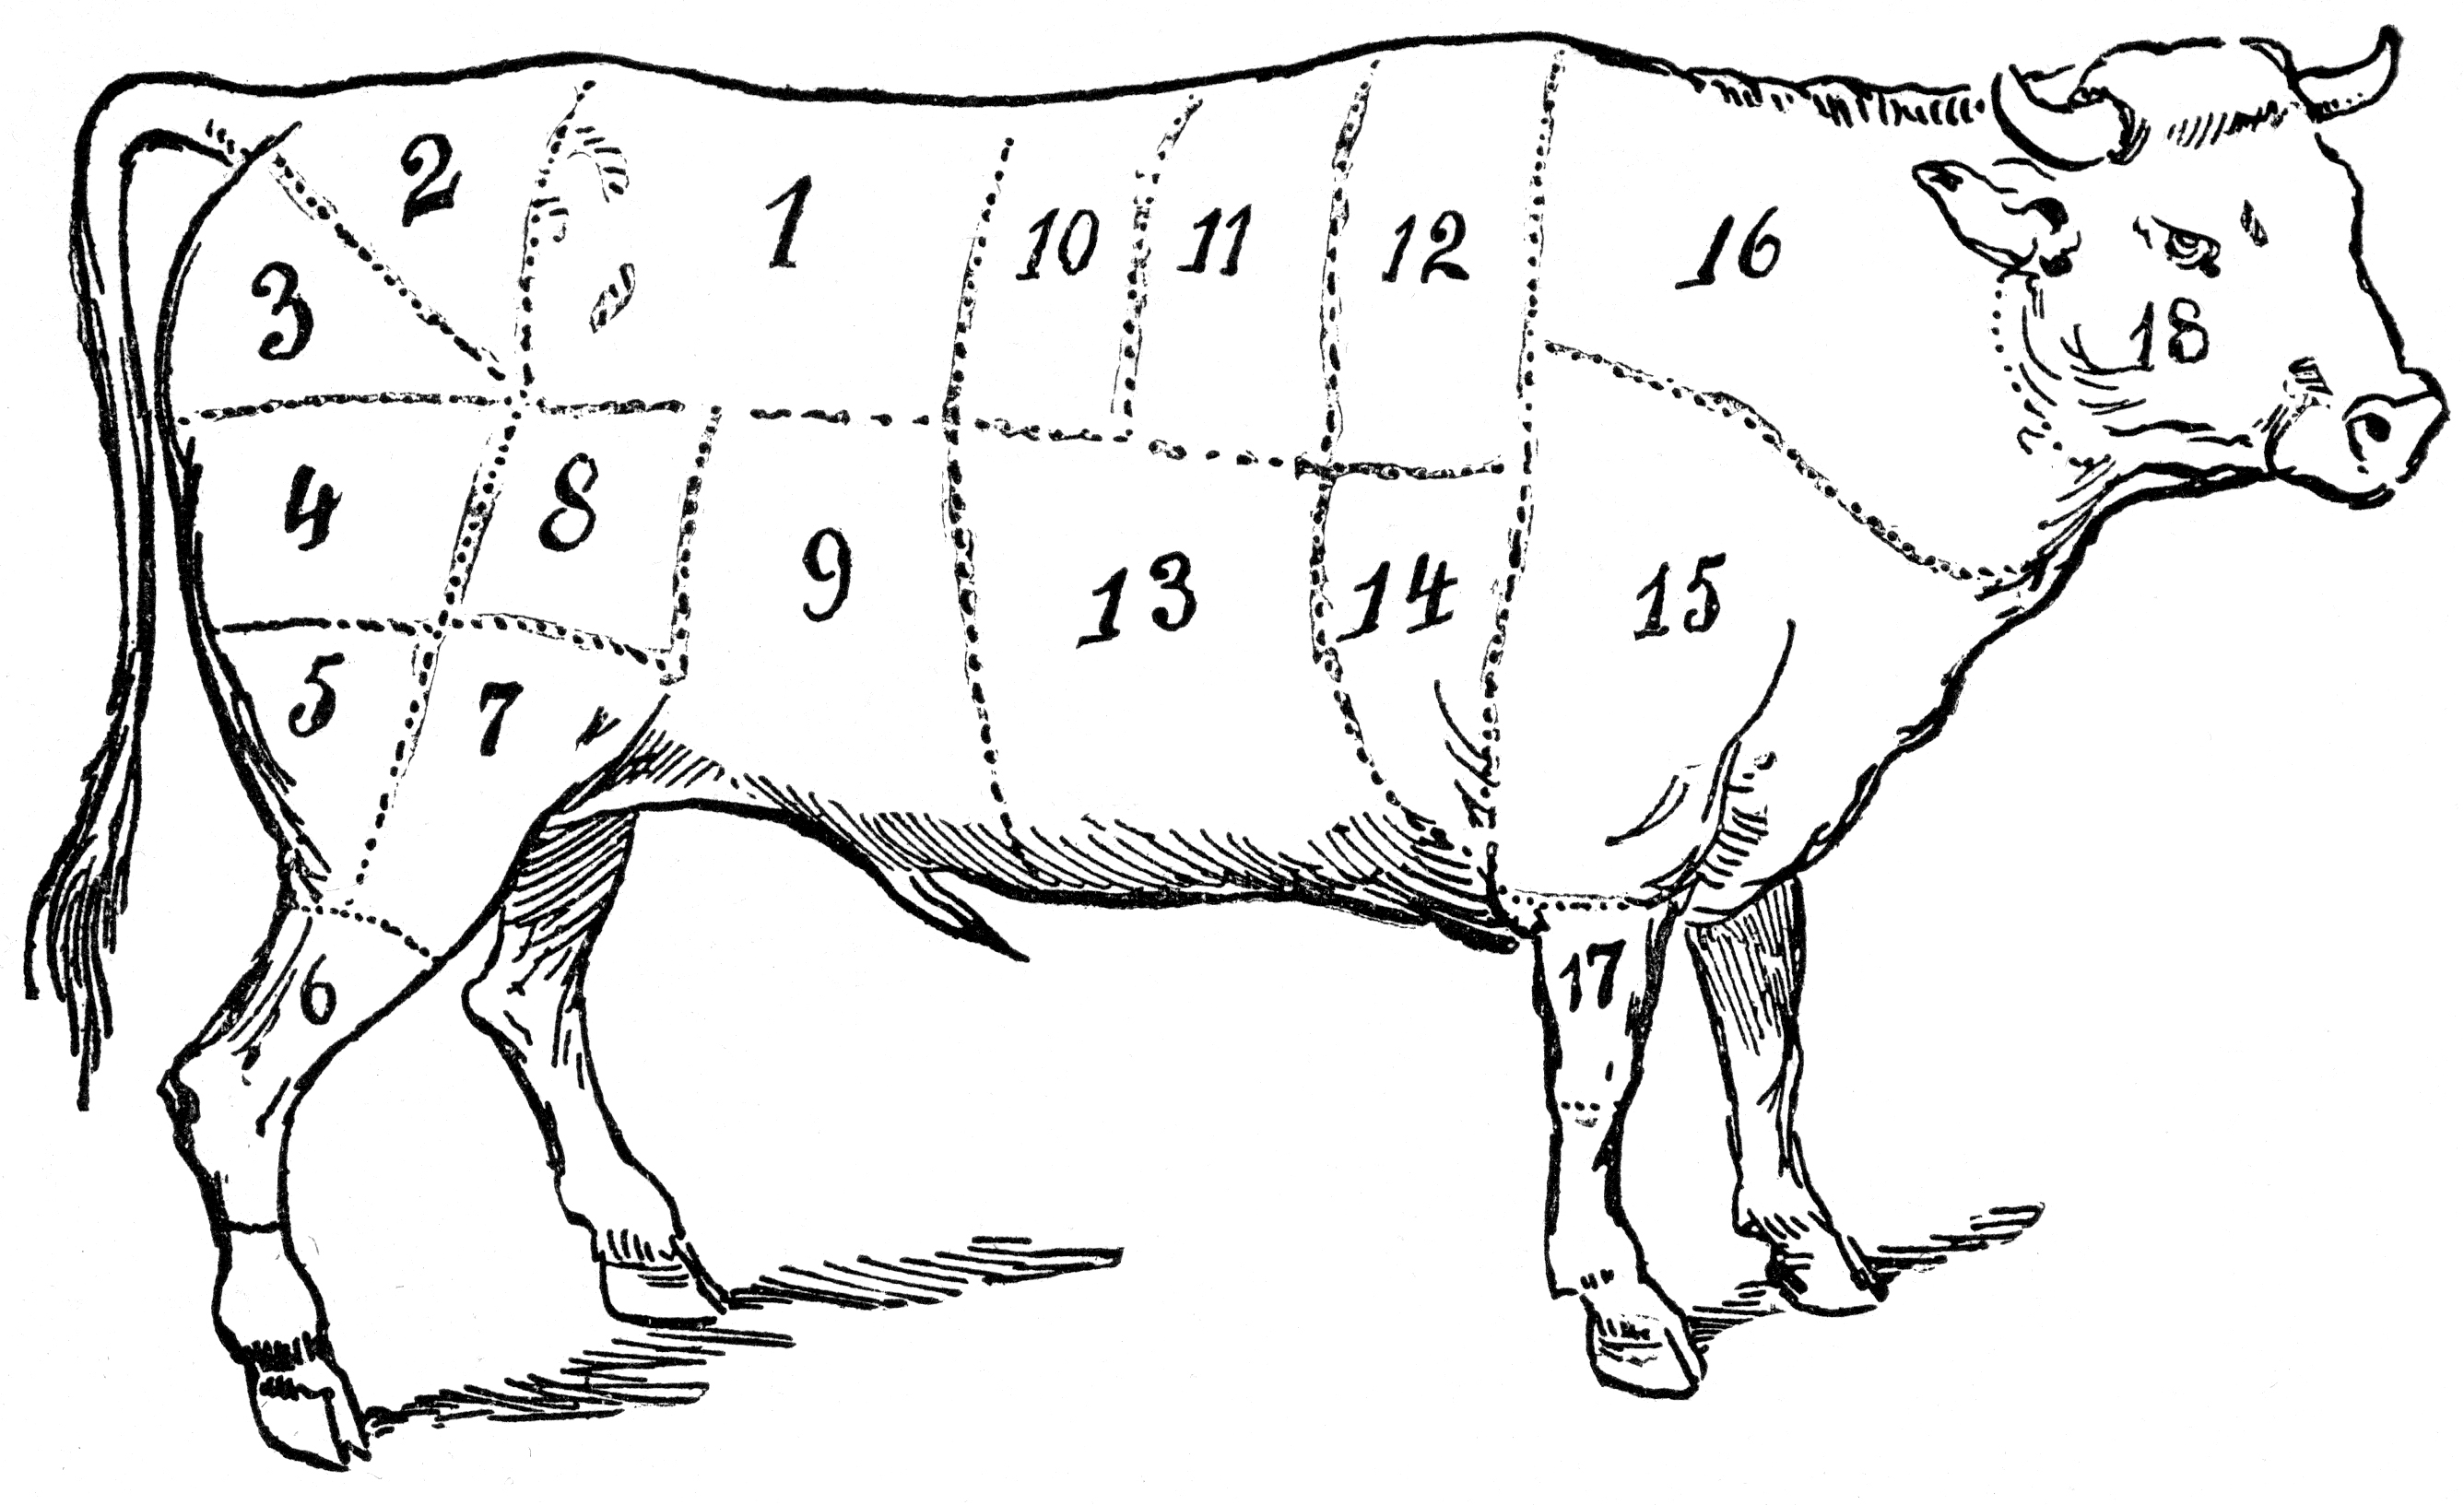 Prints For The Kitchen Print With Different Cuts Of Cow Beef Chart Poster Pig Butcher together with Butchery Logo together with Goat Meat Cuts Diagram furthermore 379356109 Shutterstock Set Of Animal Cuts For Butcher S Shop additionally Cow Butcher Diagram Cut Beef Set 480382762. on pork butcher chart meat cuts